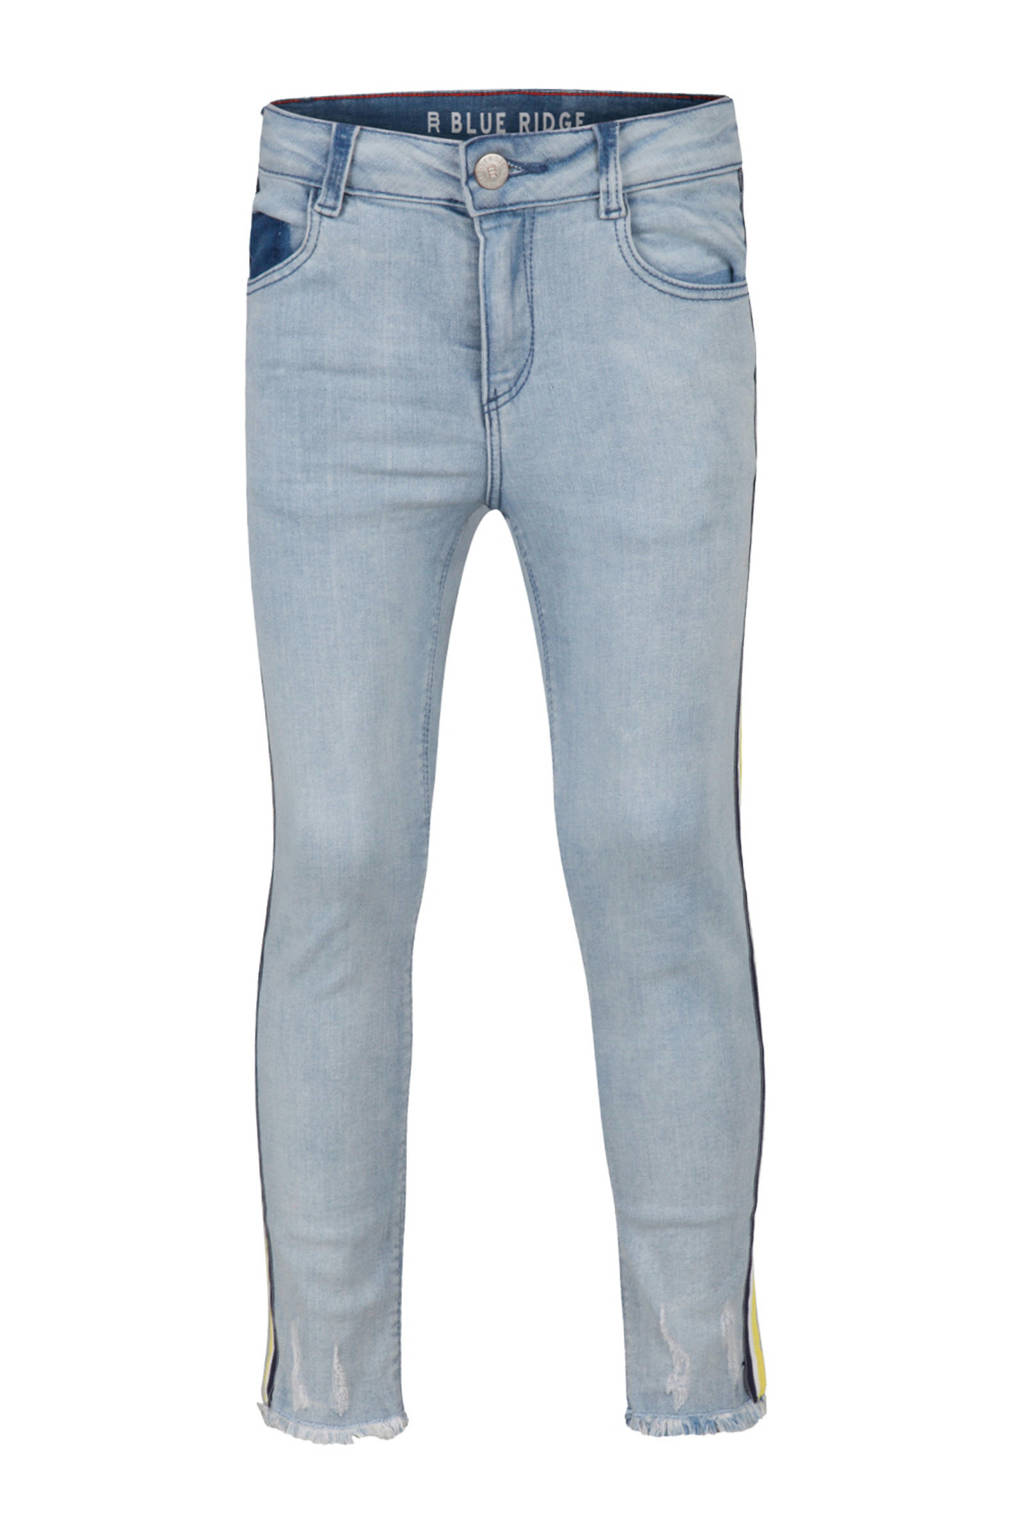 WE Fashion Blue Ridge skinny jeans Helen met zijstreep, Light denim